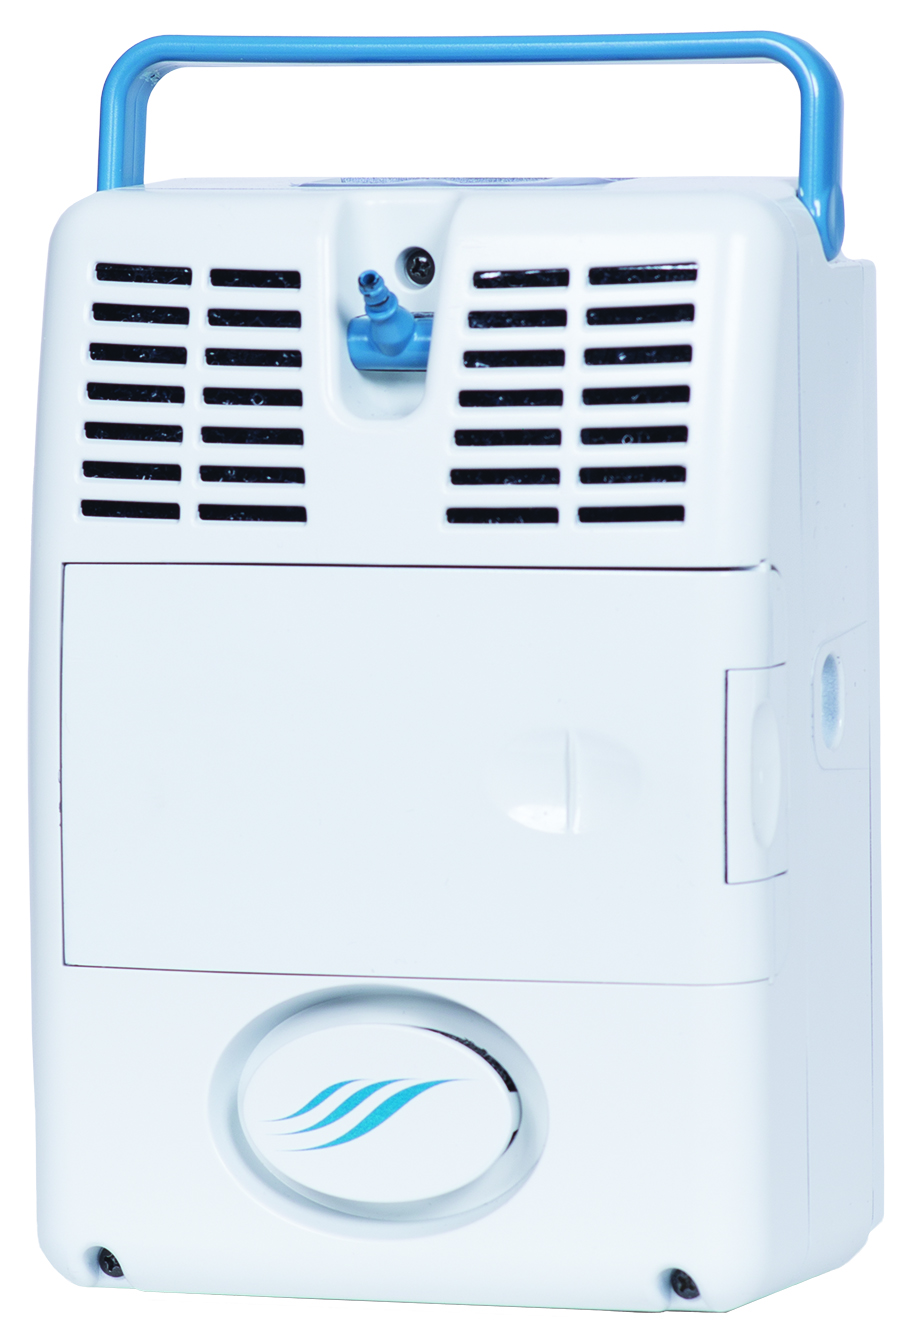 White AirSep FreeStyle 3 Portable Oxygen Concentrator